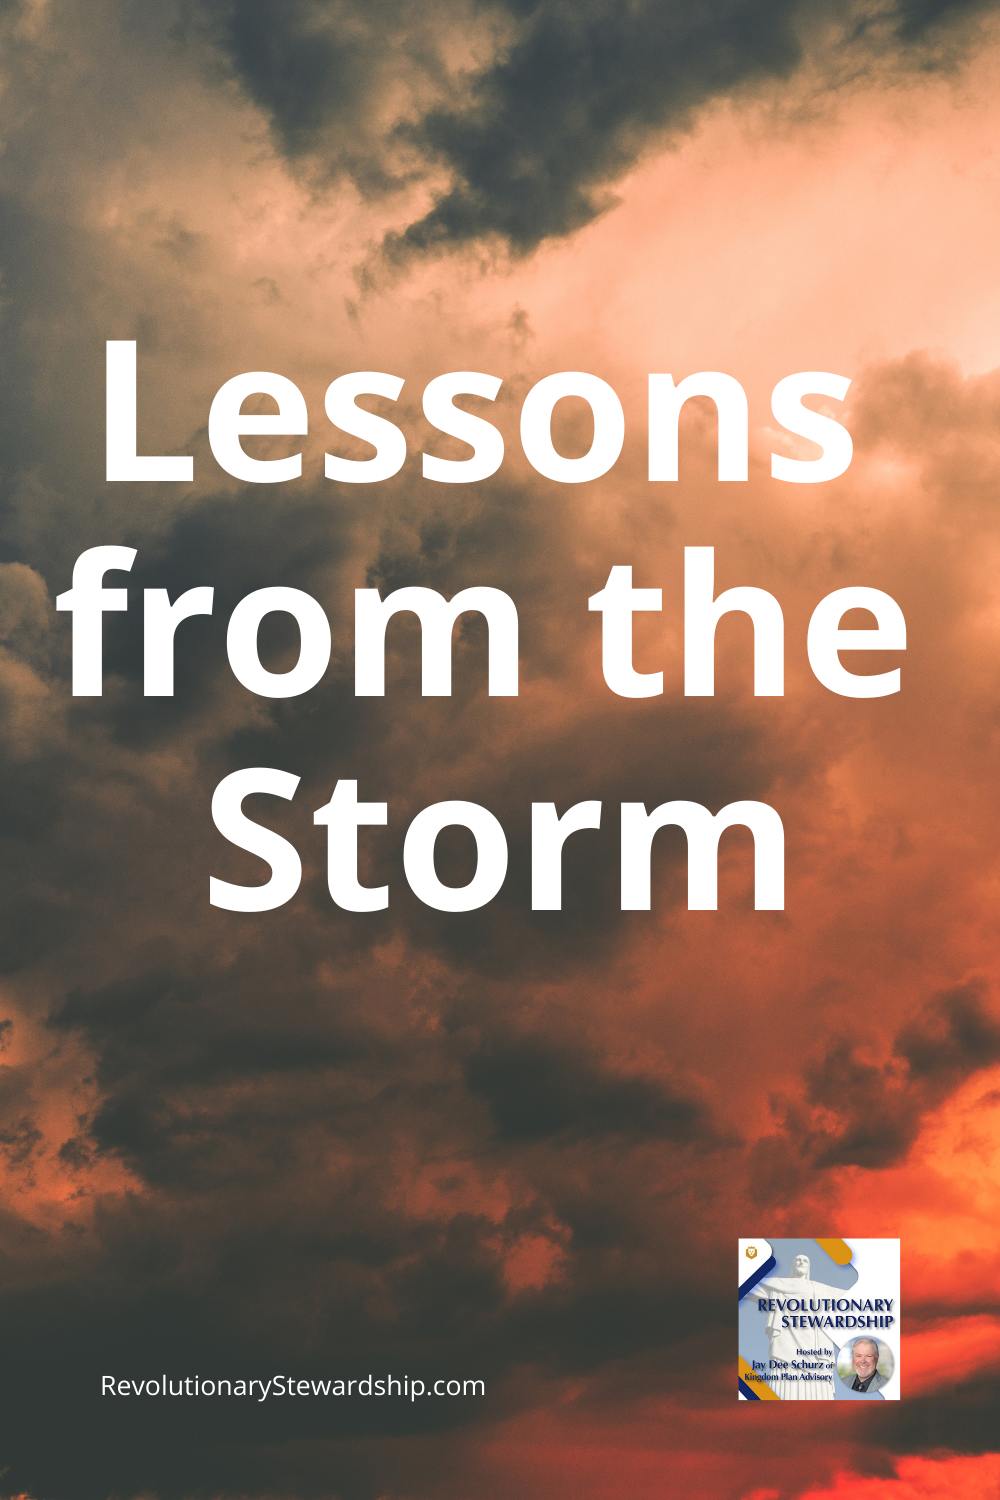 Every storm that we survive in our lives is a learning opportunity. How do we react to a similar storm in the future?